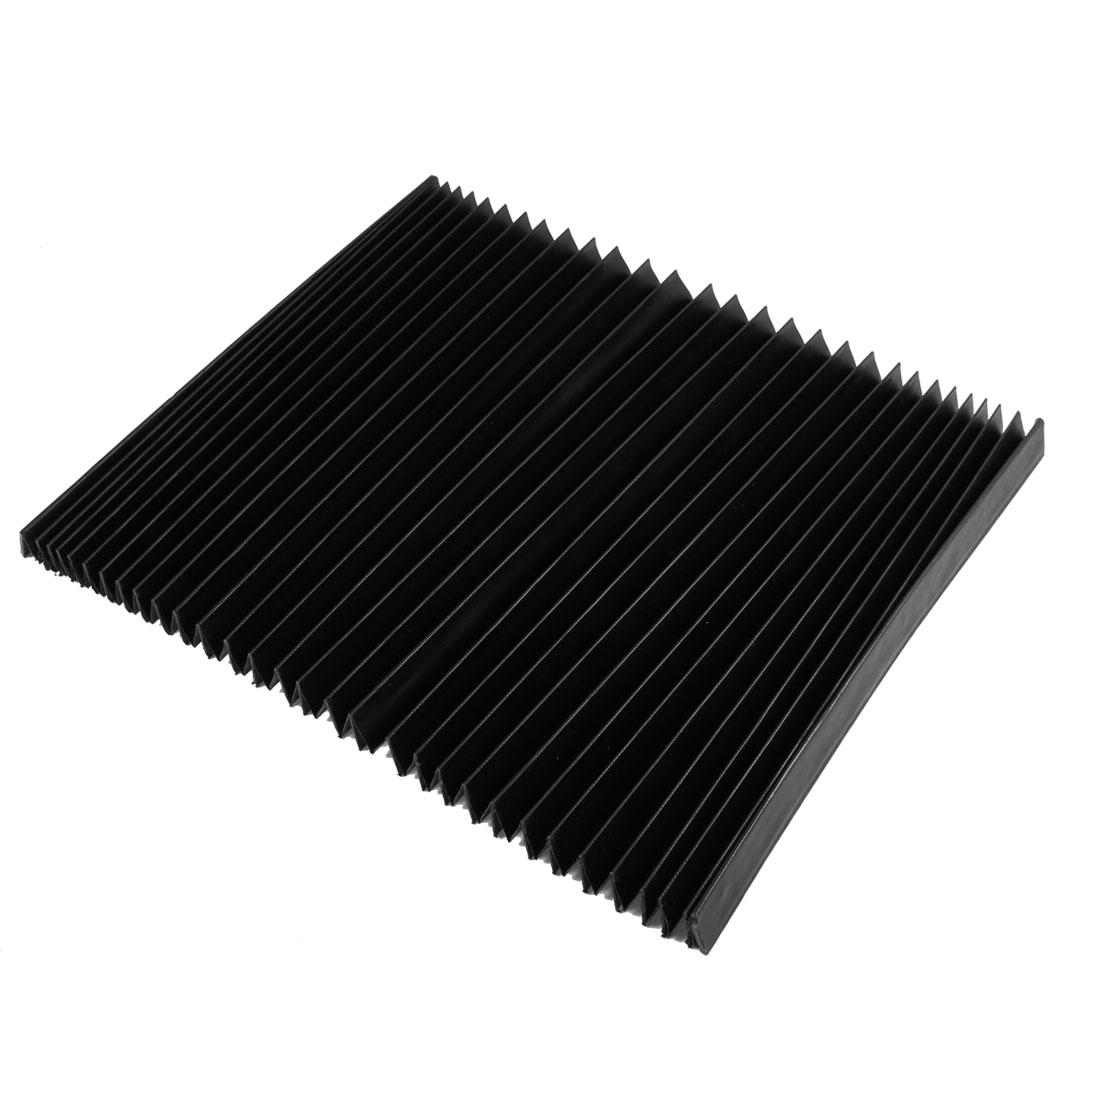 "11.2"" x 2.3"" x 0.78"" Flexible Accordion Dust Cover for Milling Machine"